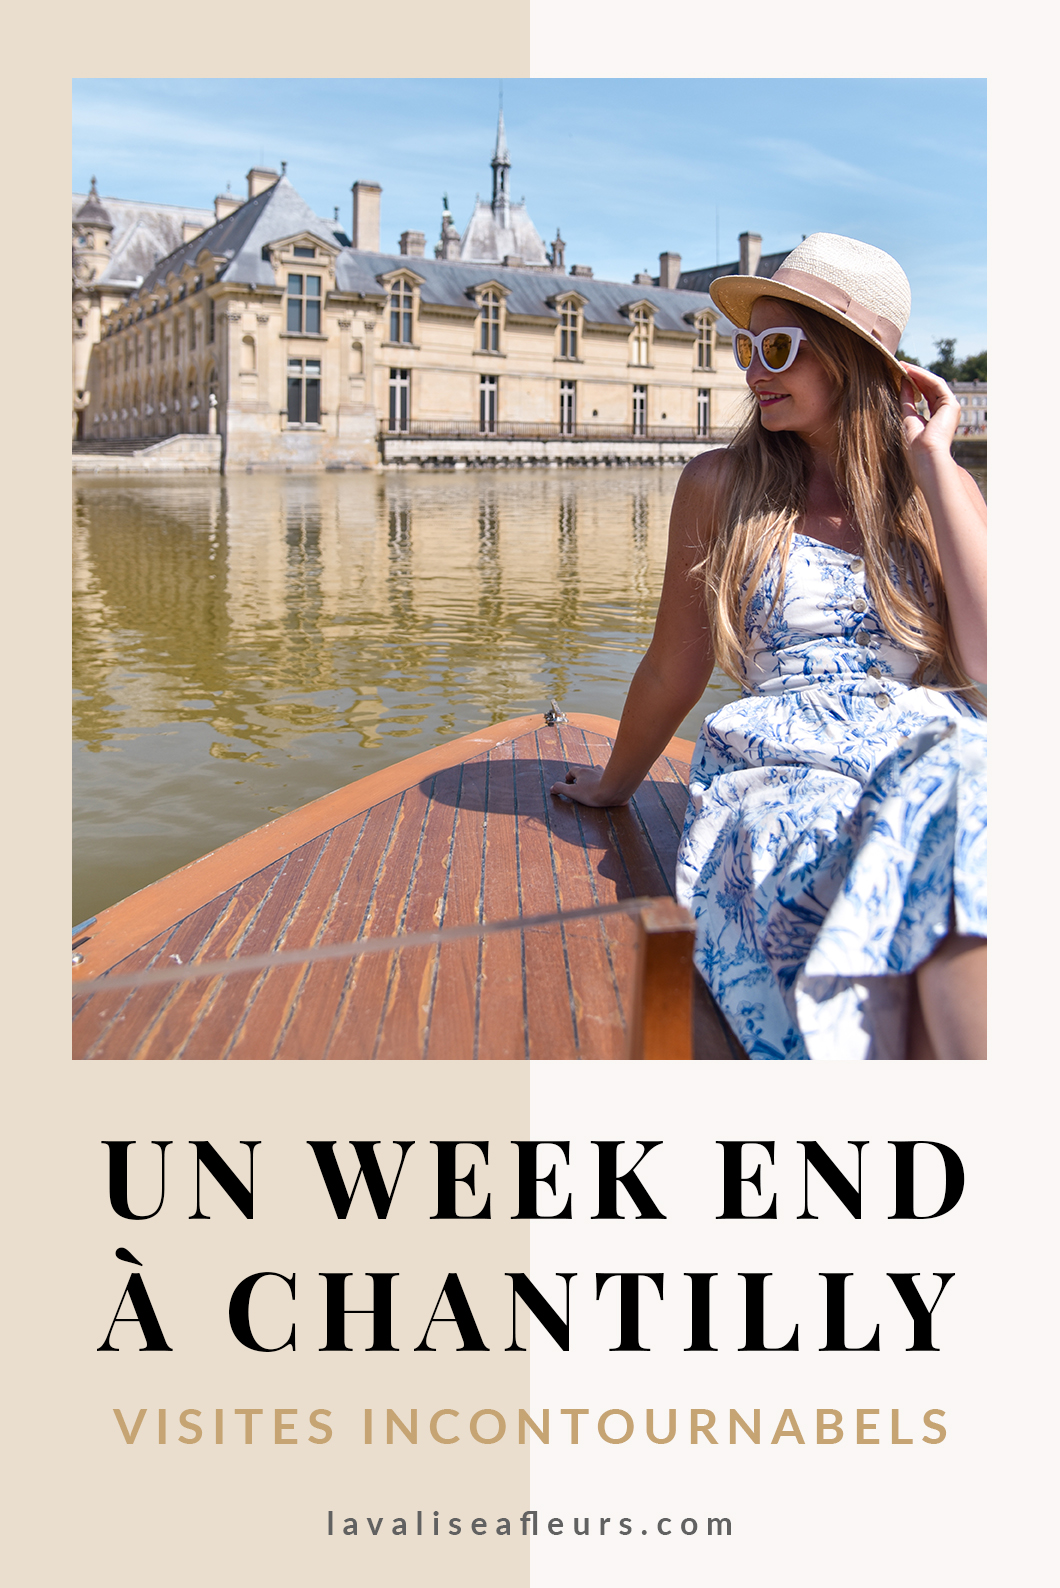 Un week end à Chantilly, les incontournables